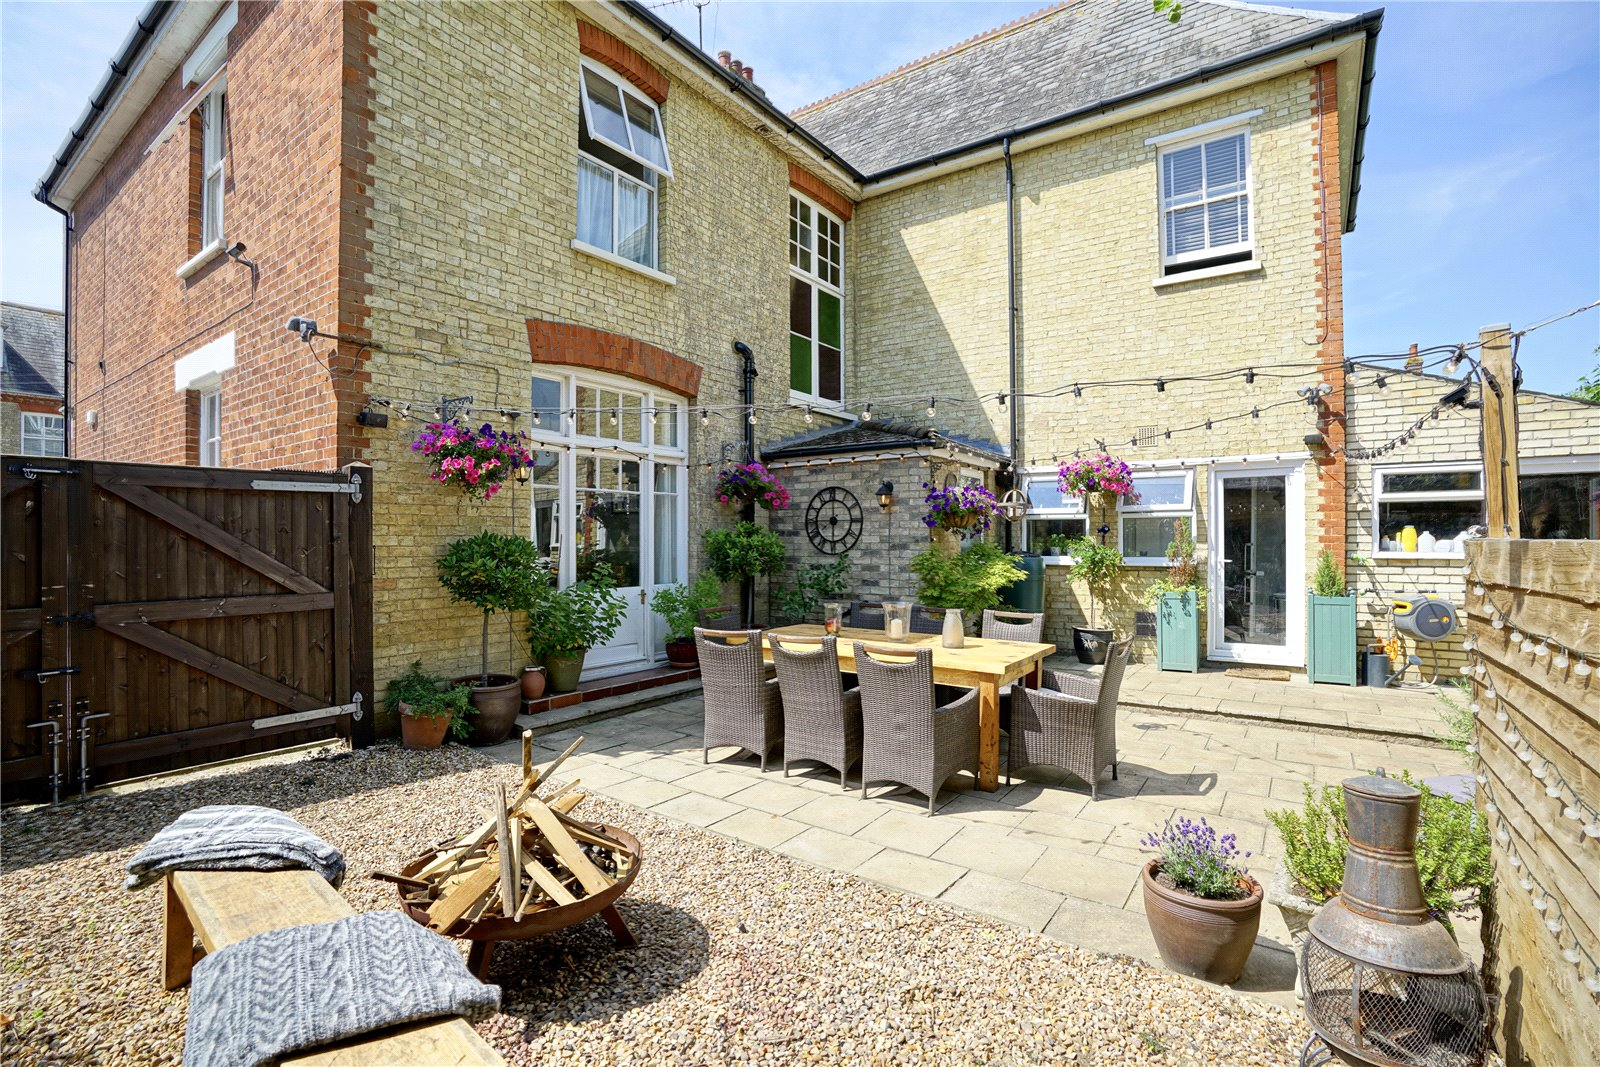 5 bed house for sale in Avenue Road, St. Neots  - Property Image 3